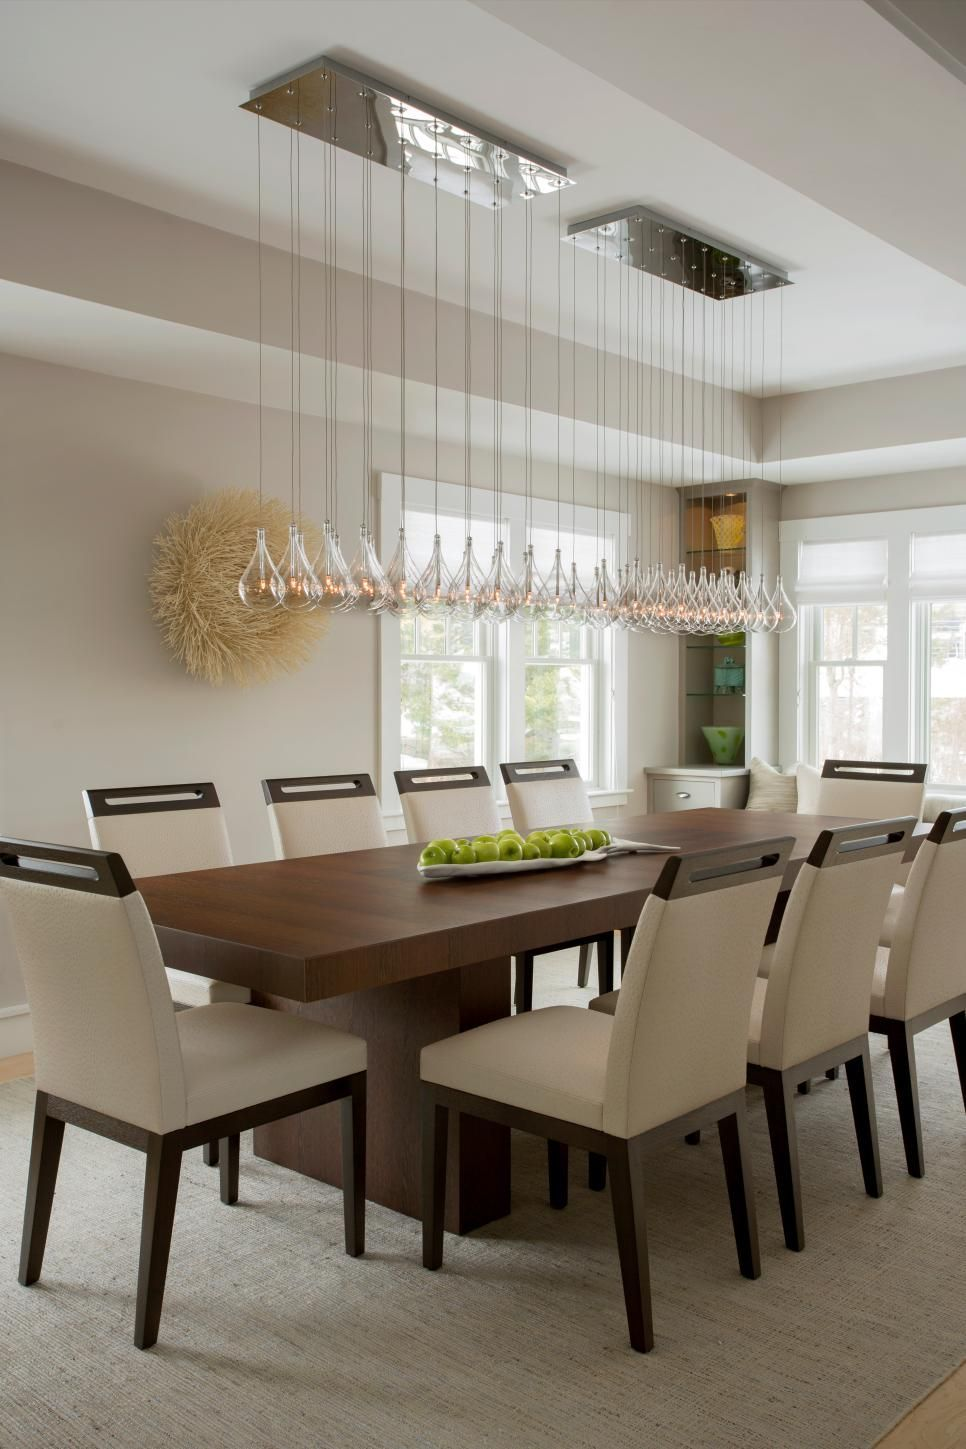 This Modern Dining Room Space Features A Long Glass Chandelier